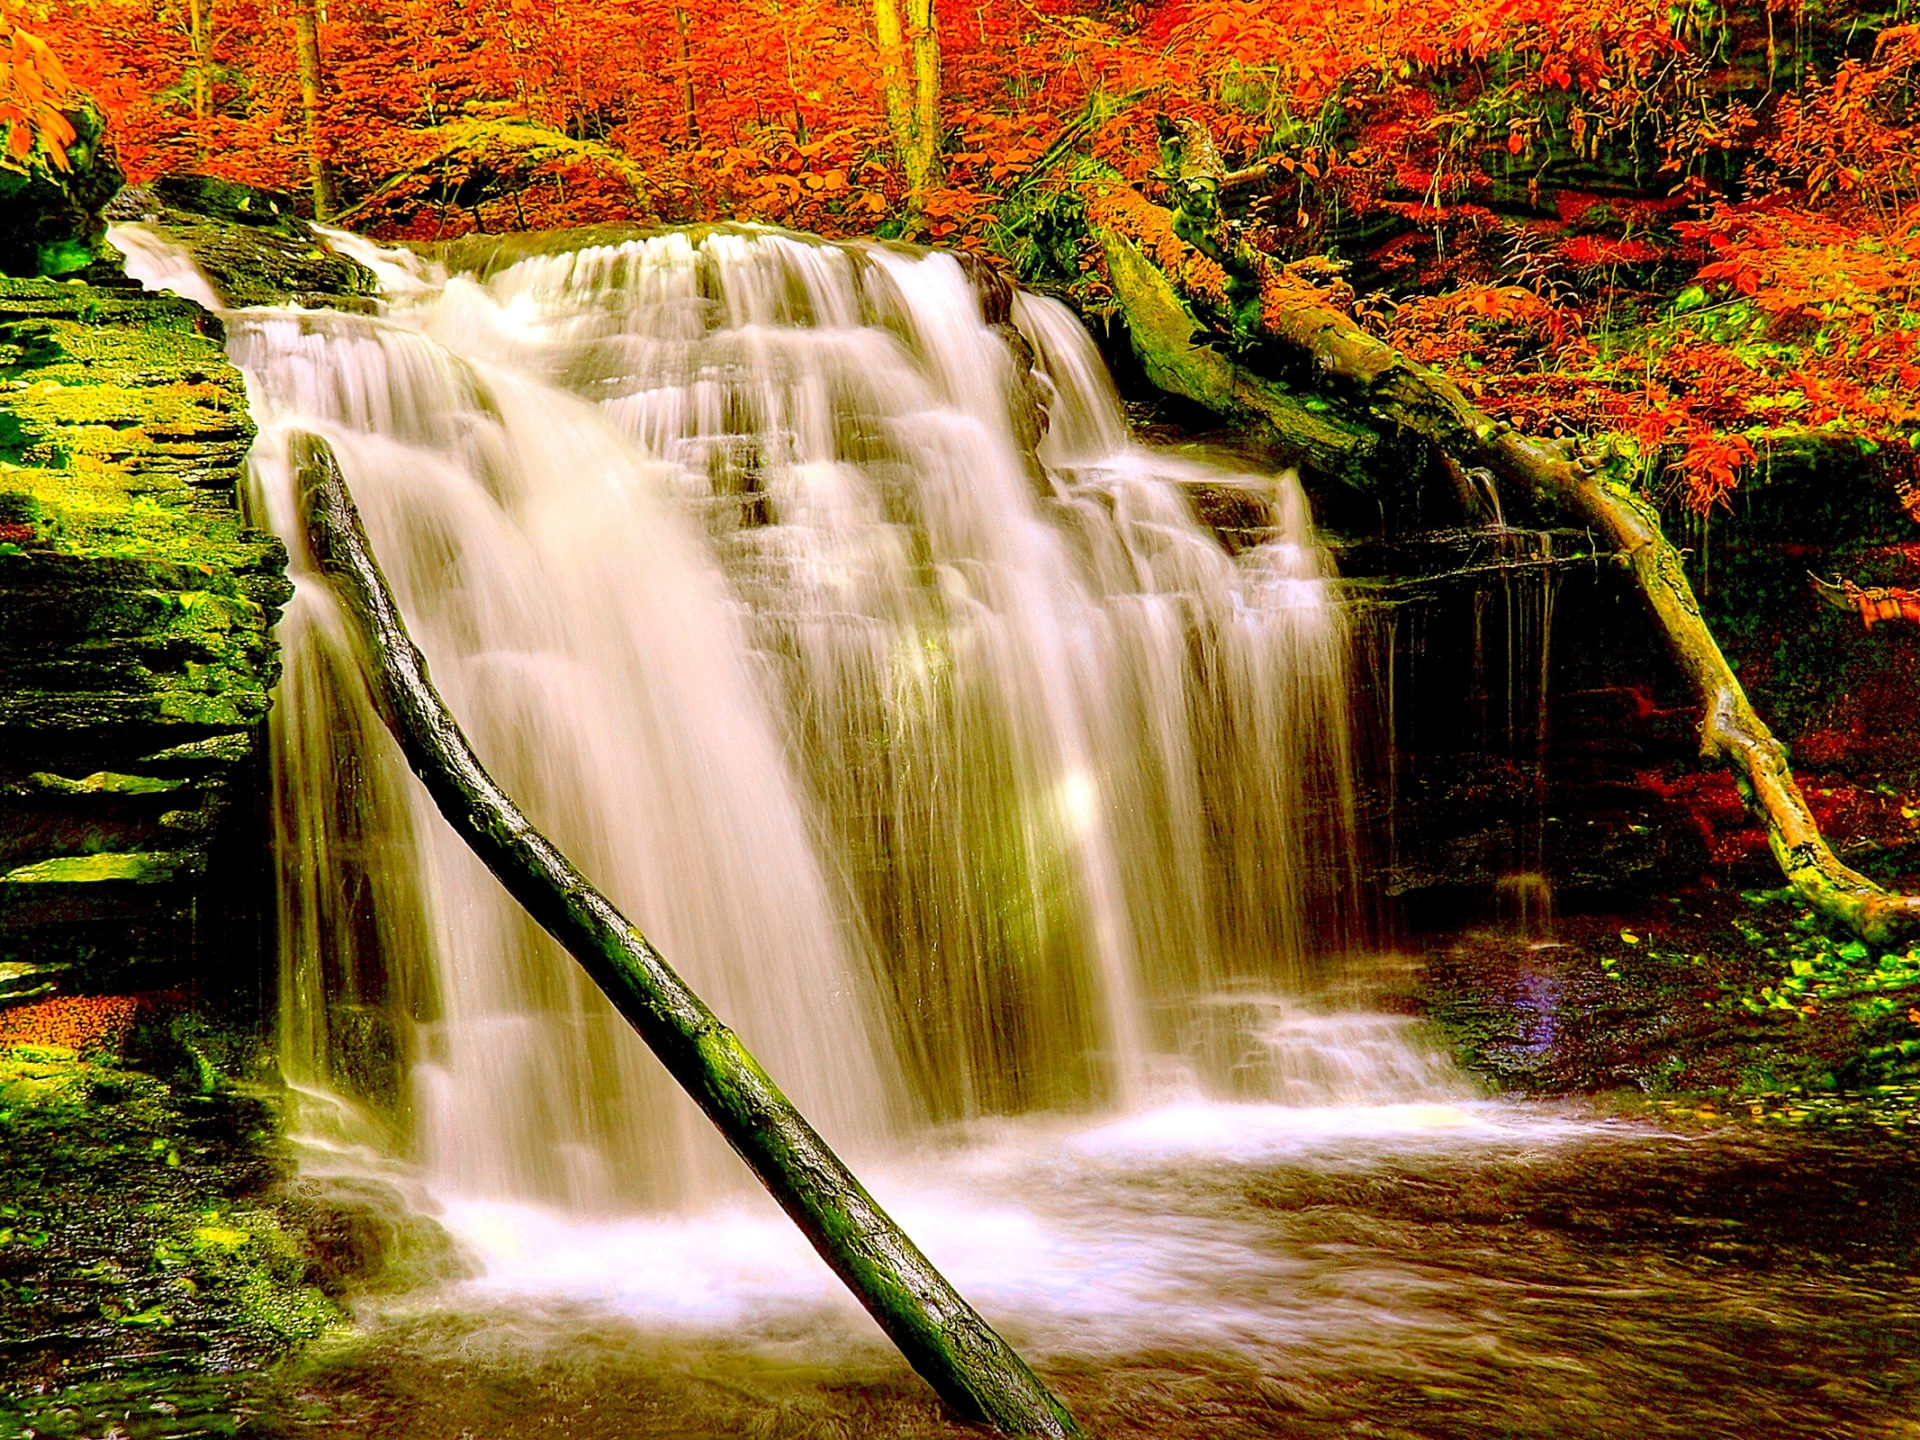 Free Live Wallpapers For Iphone X Autumn Forest Waterfall Nature Aiyumn Hd Background